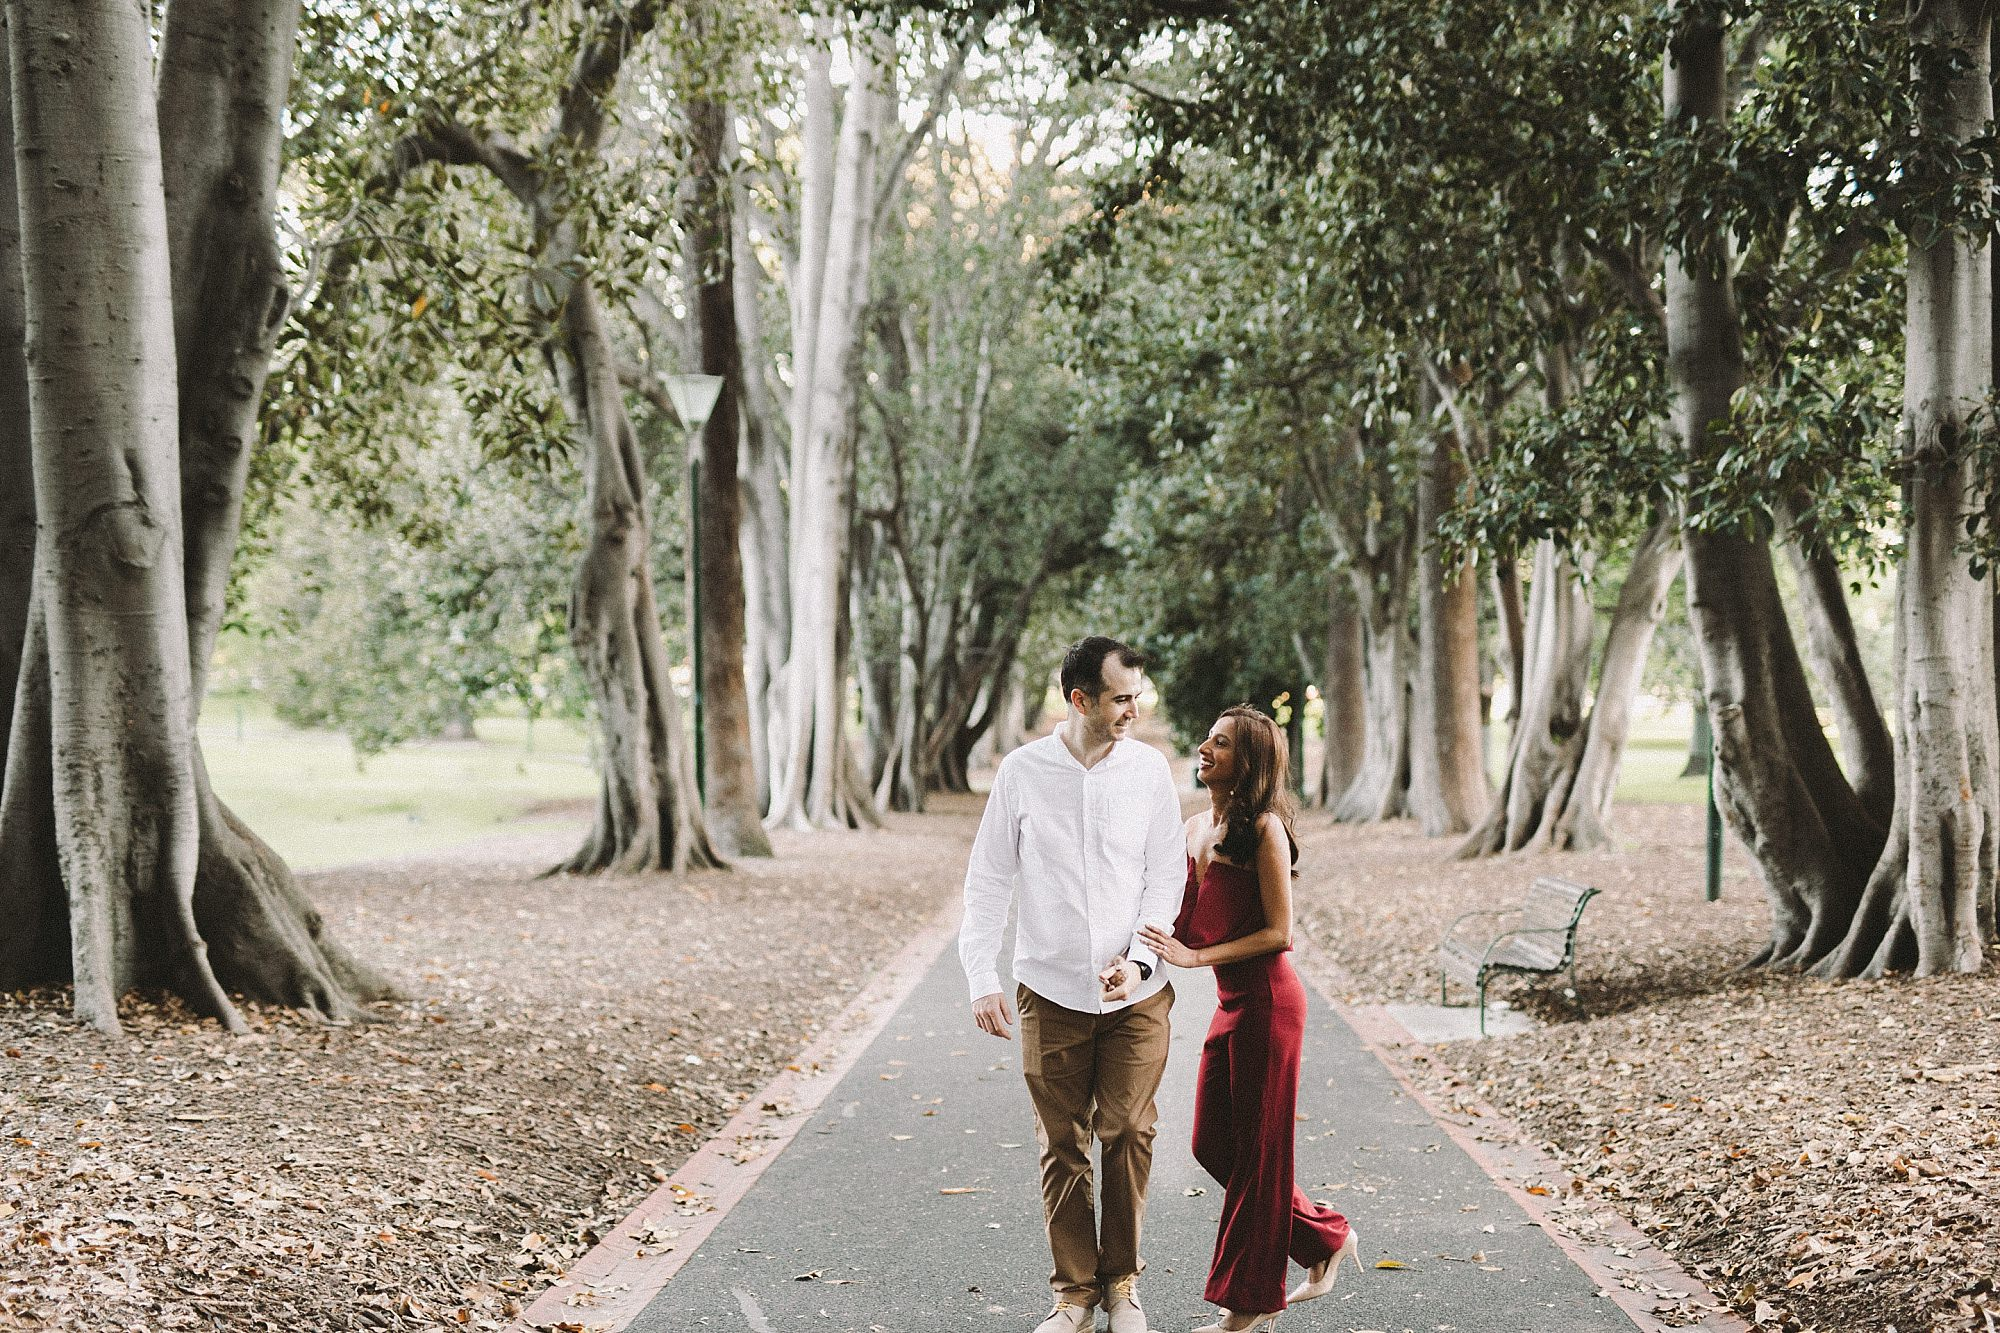 Melbourne Natural and Fun Engagement Wedding Photographer 186.JPG